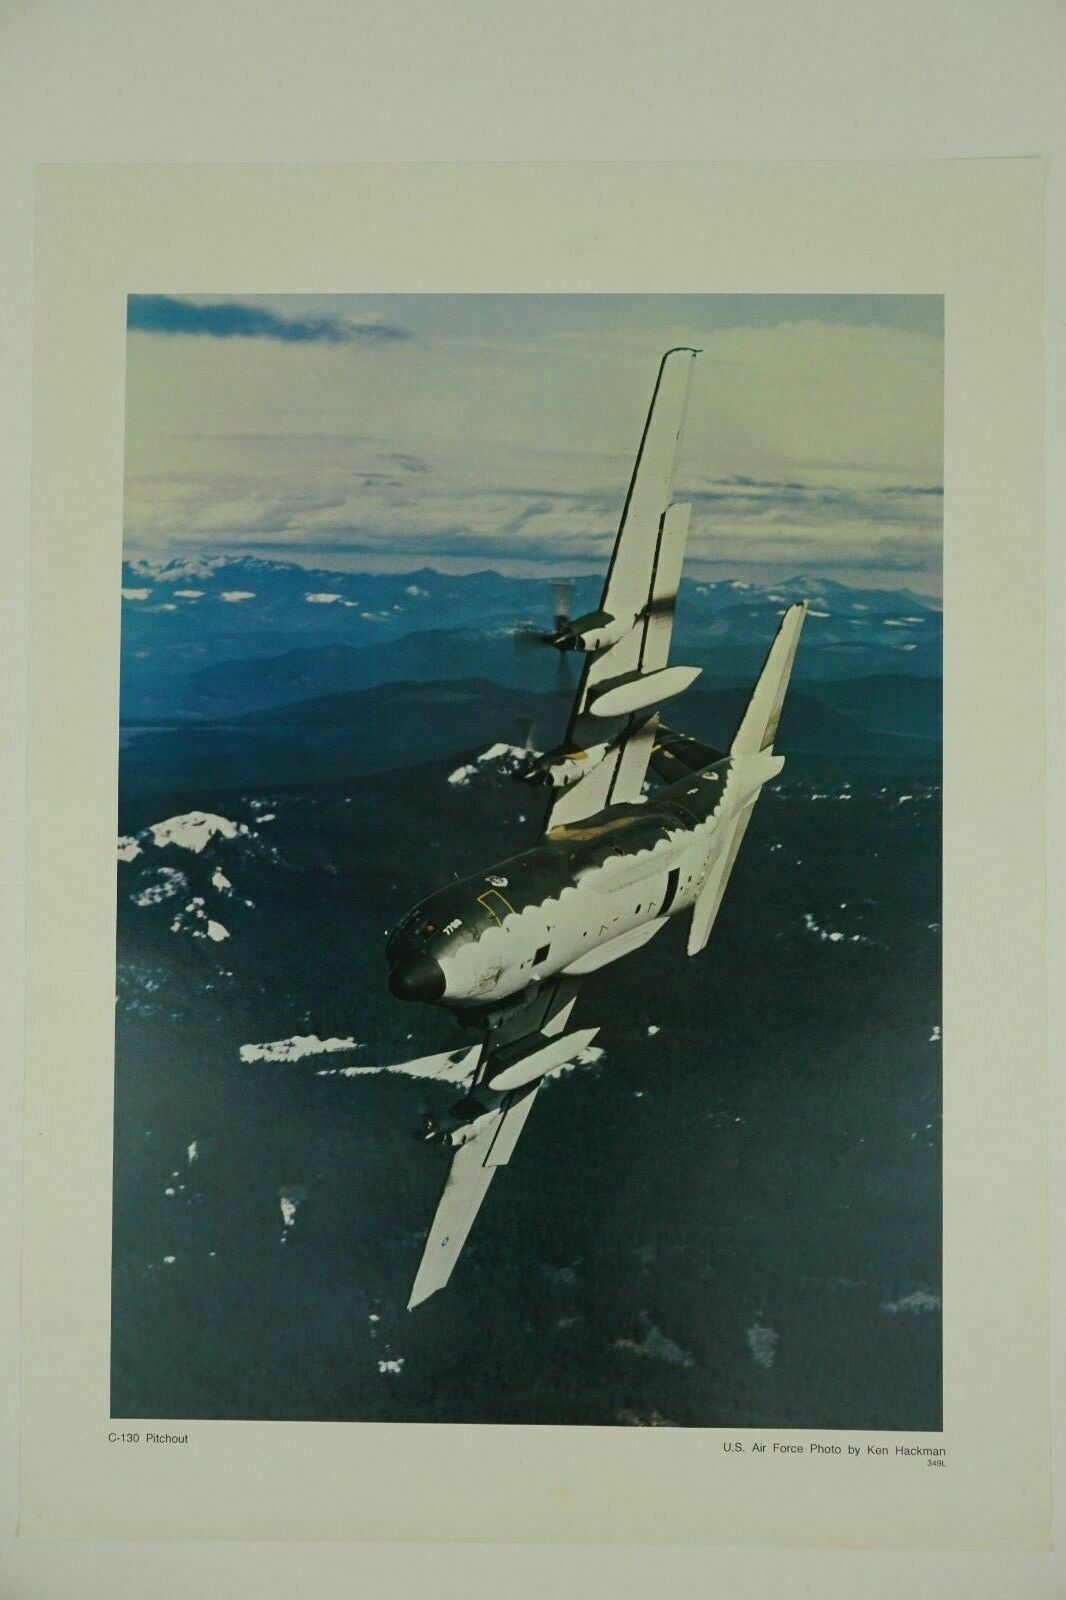 Primary image for US Air Force C-130 Pitchout Lithograph Print Artwork Poster USAF Ken Hackman